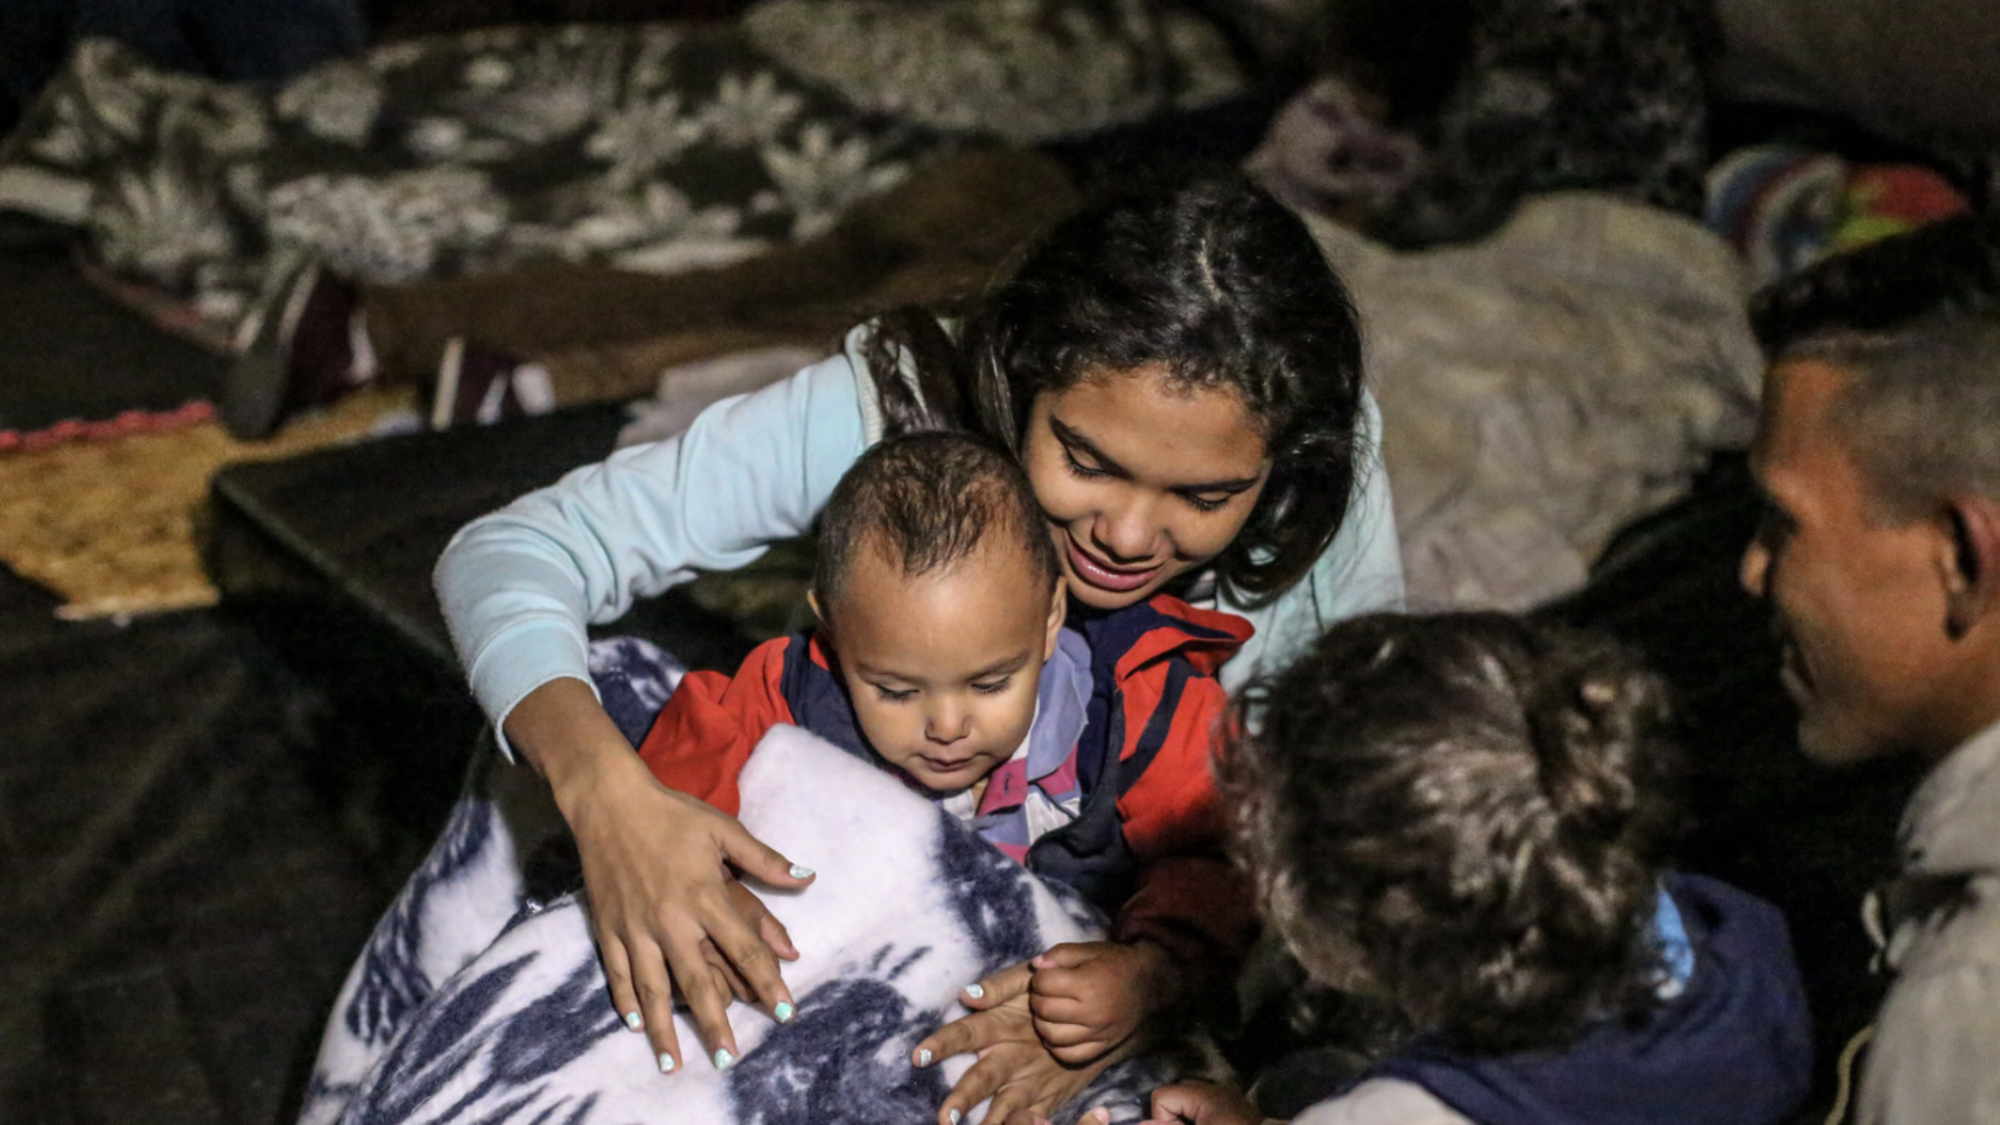 A Venezuelan mother and two of her children sit playing in a temporary shelter tent for migrants.